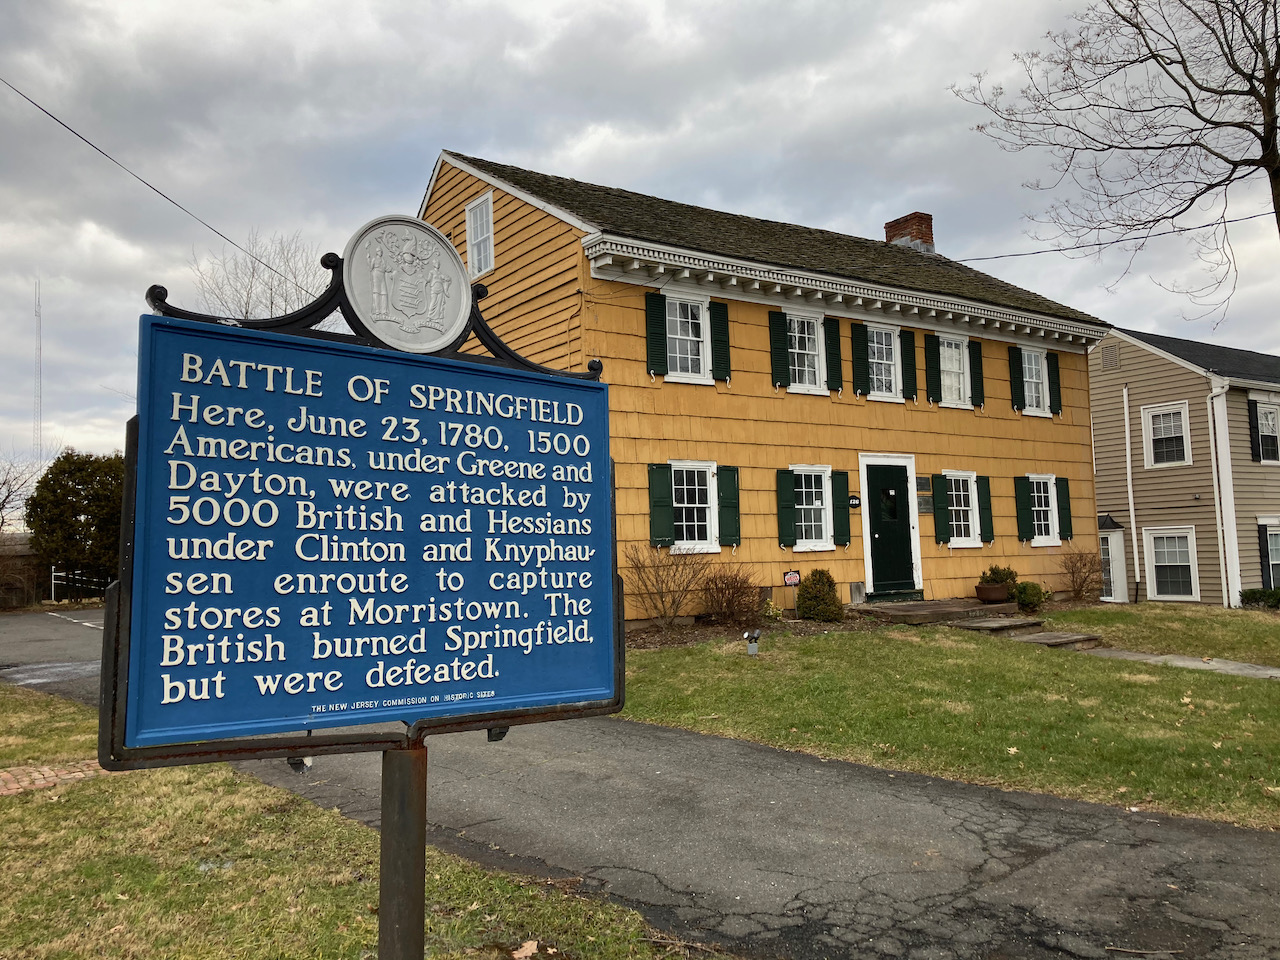 Exterior of the Osborn Cannonball House, with a sign outside that says BATTLE OF SPRINGFIELD HERE JUNE 23 1780, 1500 AMERICANS UNDER GREENE AND DAYTON WERE ATTACKED BY 5000 BRITISH AND HESSIANS UNDER CLINTON AND KNYPHAUSEN ENROUTE TO CAPTURE STORES AT MORRISTOWN. THE BRITISH BURNED SPRINGFIELD BUT WERE DEFEATED.